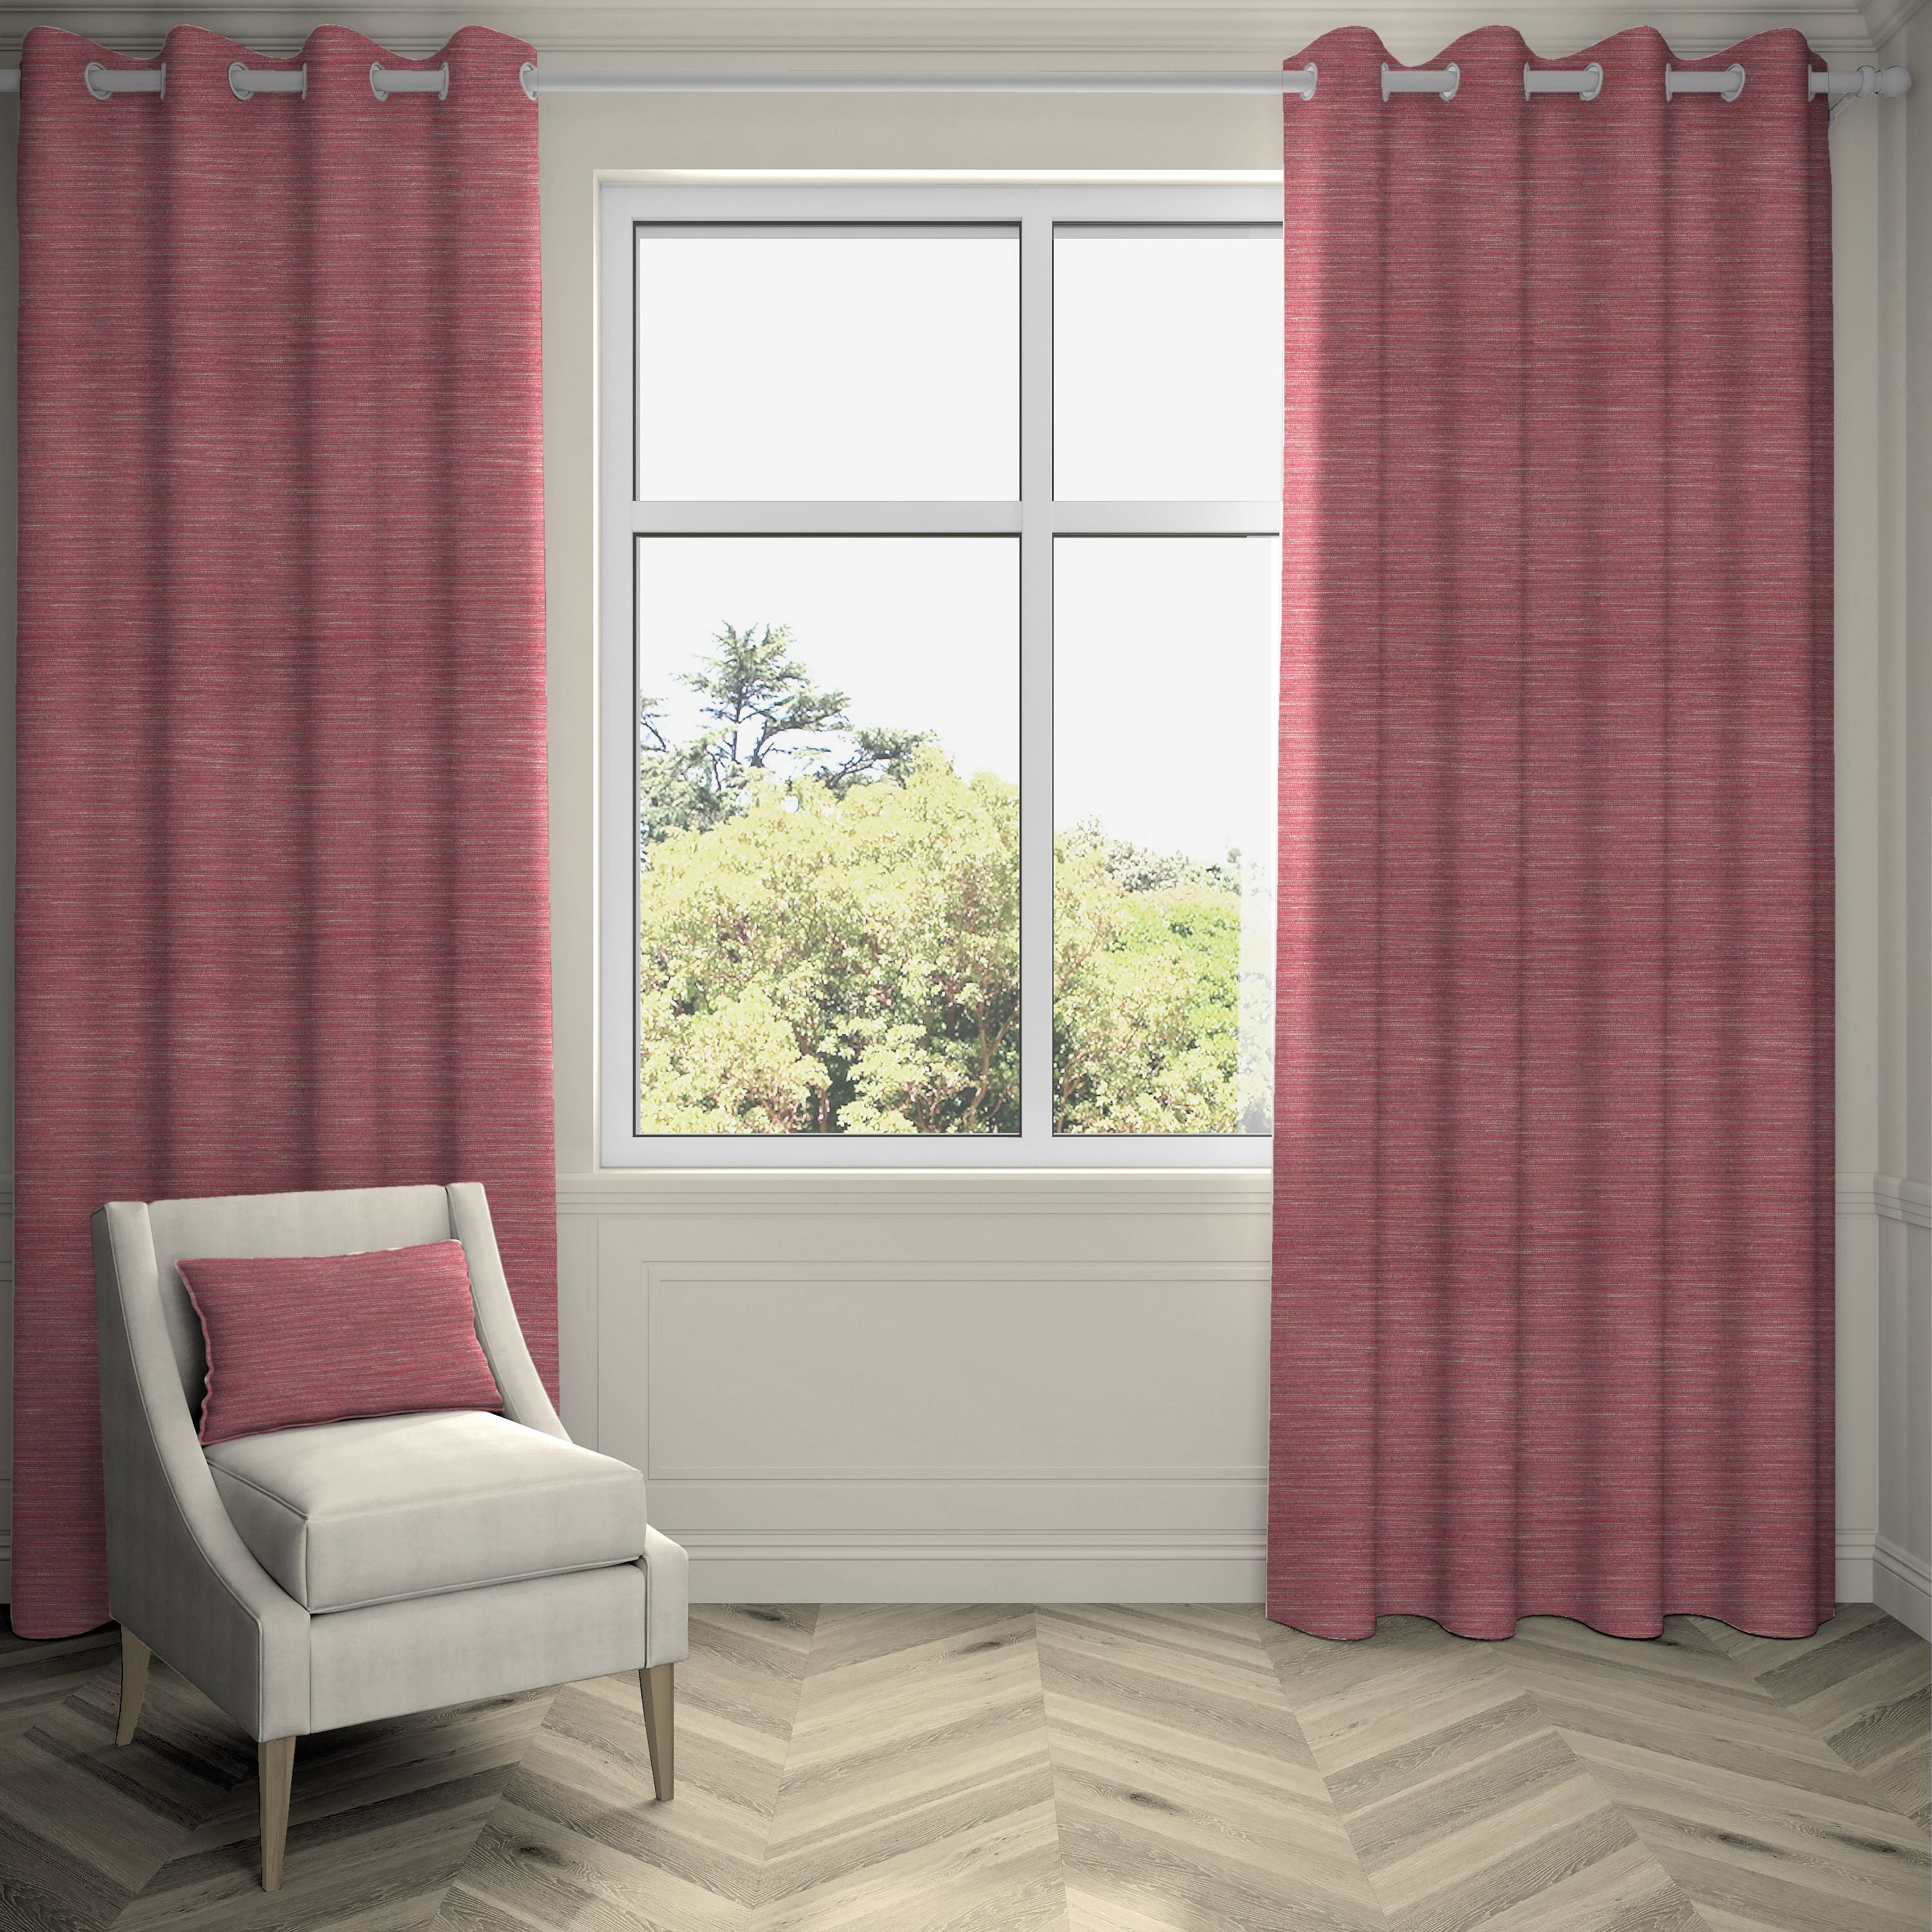 "McAlister Textiles Hamleton Red Textured Plain Curtains Tailored Curtains 116cm(w) x 137cm(d) (46"" x 54"")"